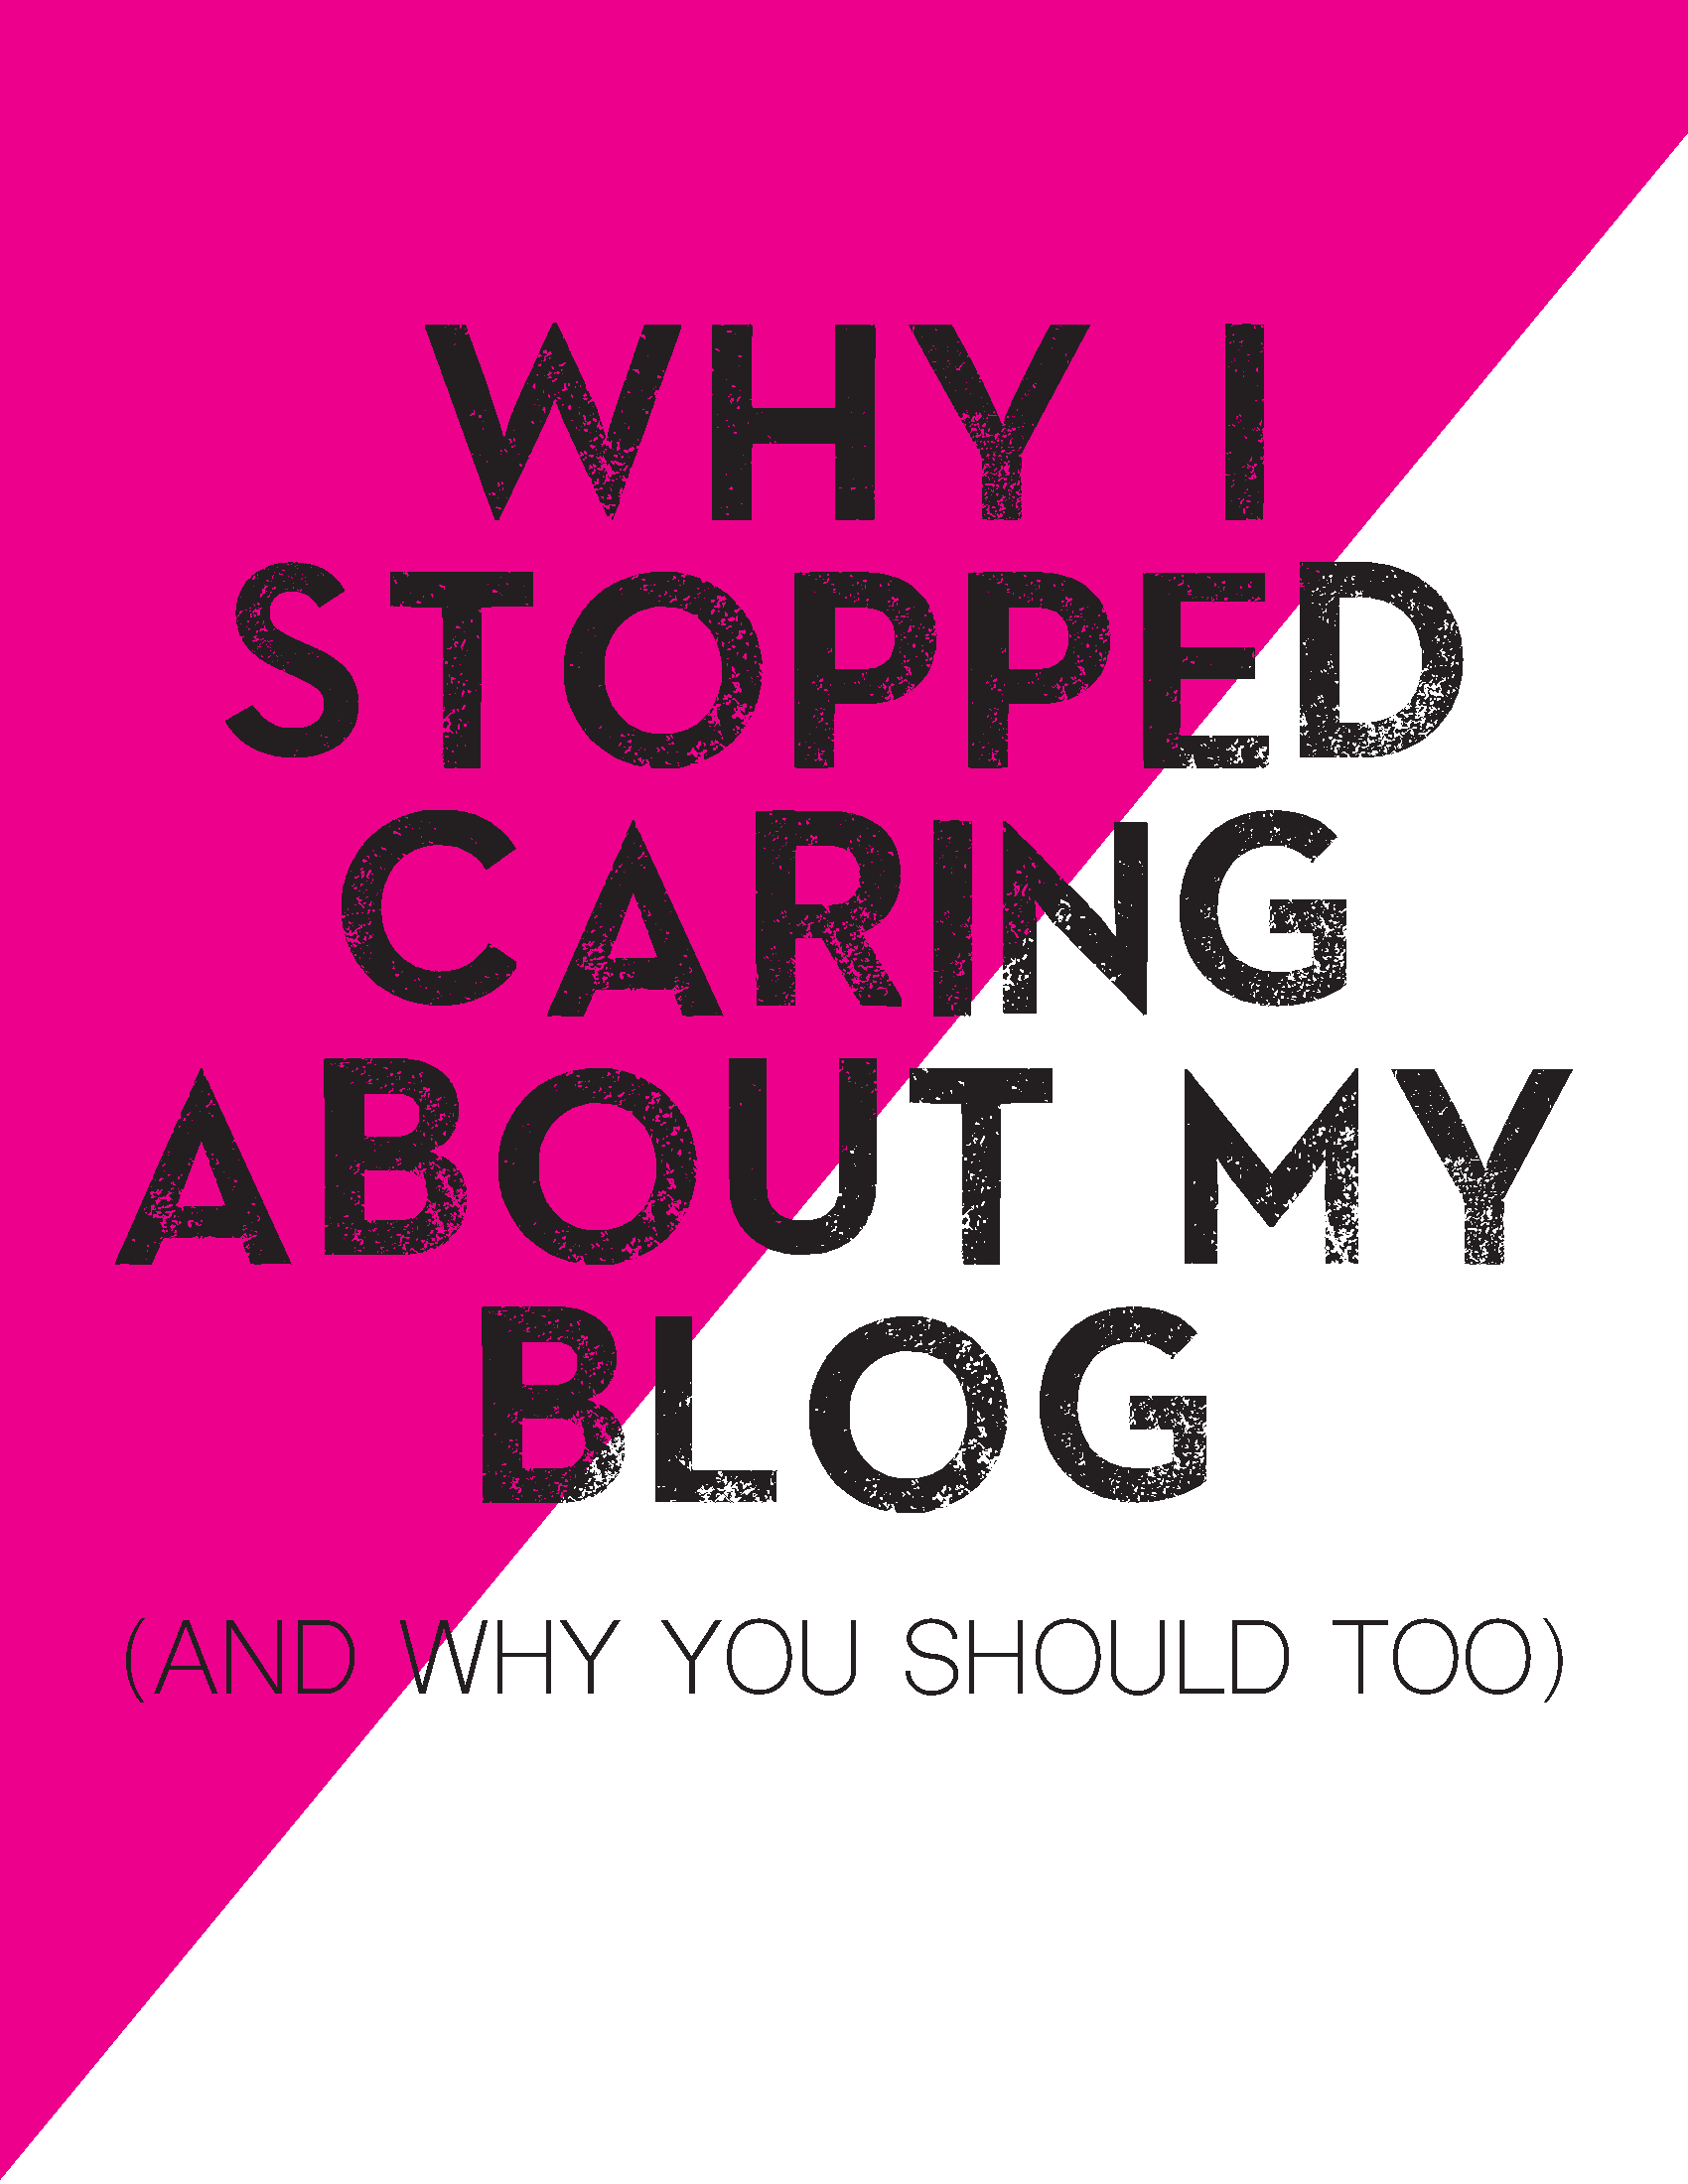 Why I Stopped Caring About My Blog (and you should too!)